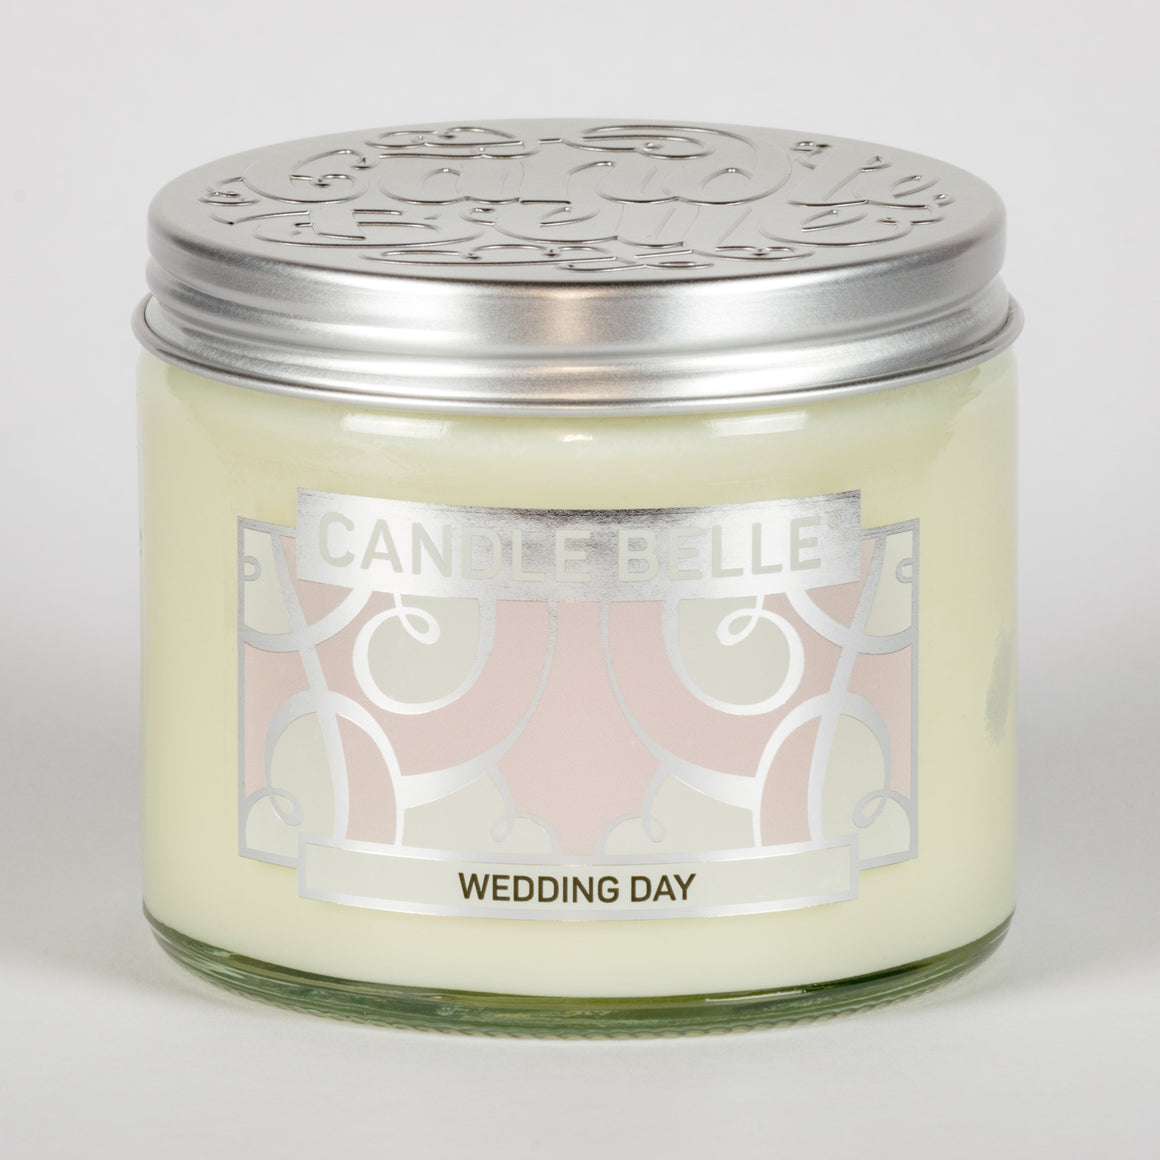 Candle Belle® Wedding Day Fragranced Twin Wick Jar Candle 240g (3 Pack)